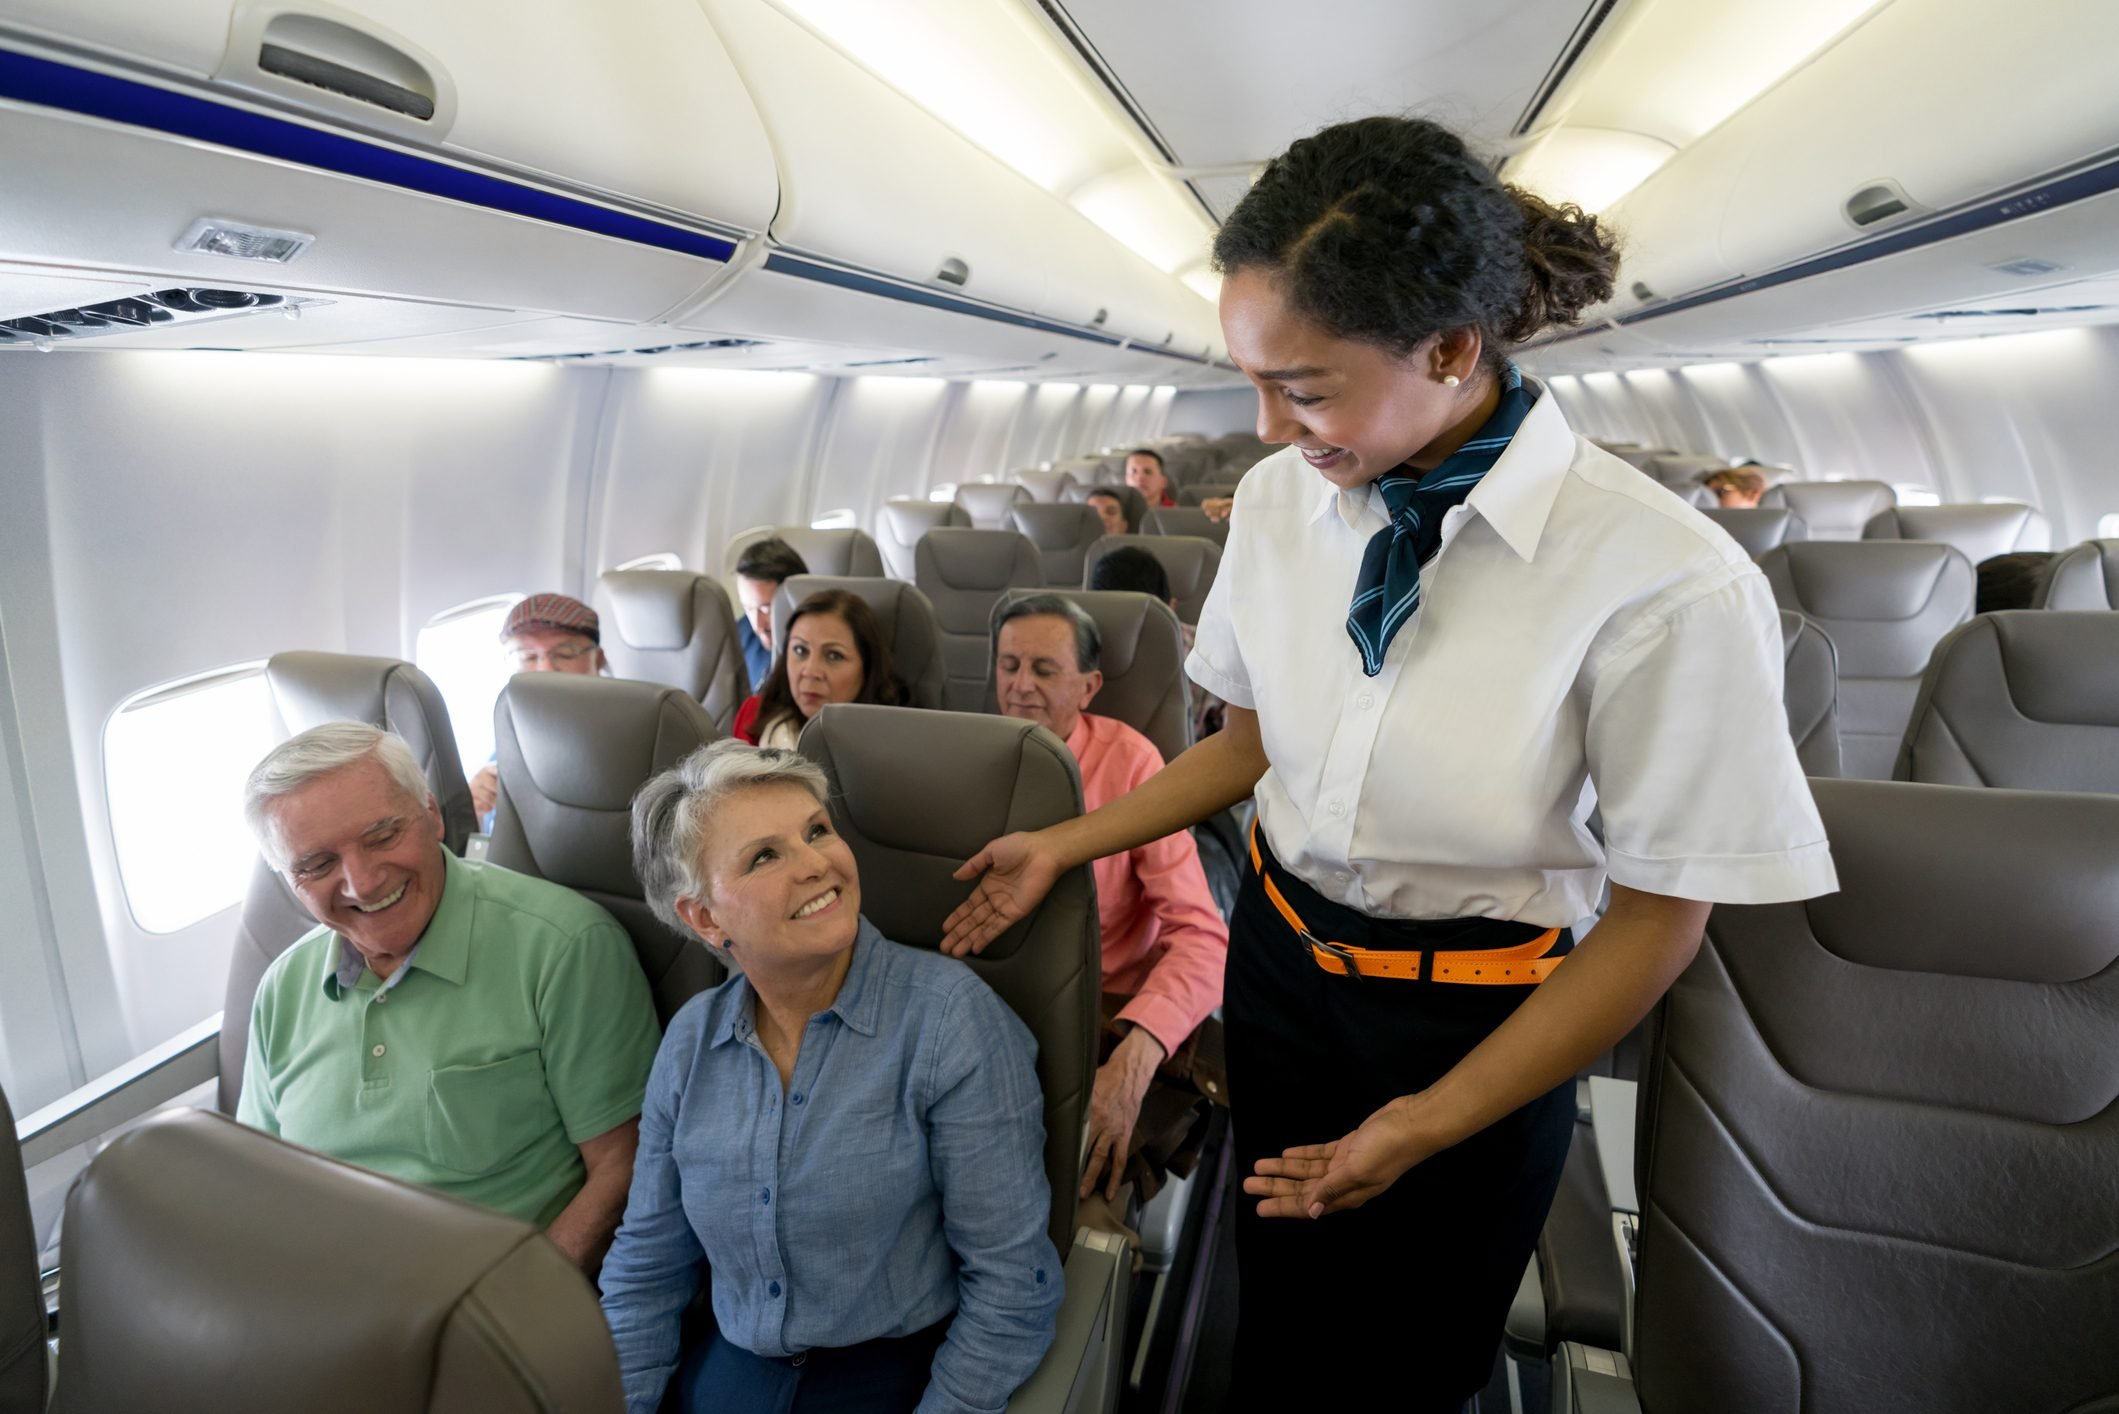 Flight attendant checking on a senior couple in an airplane